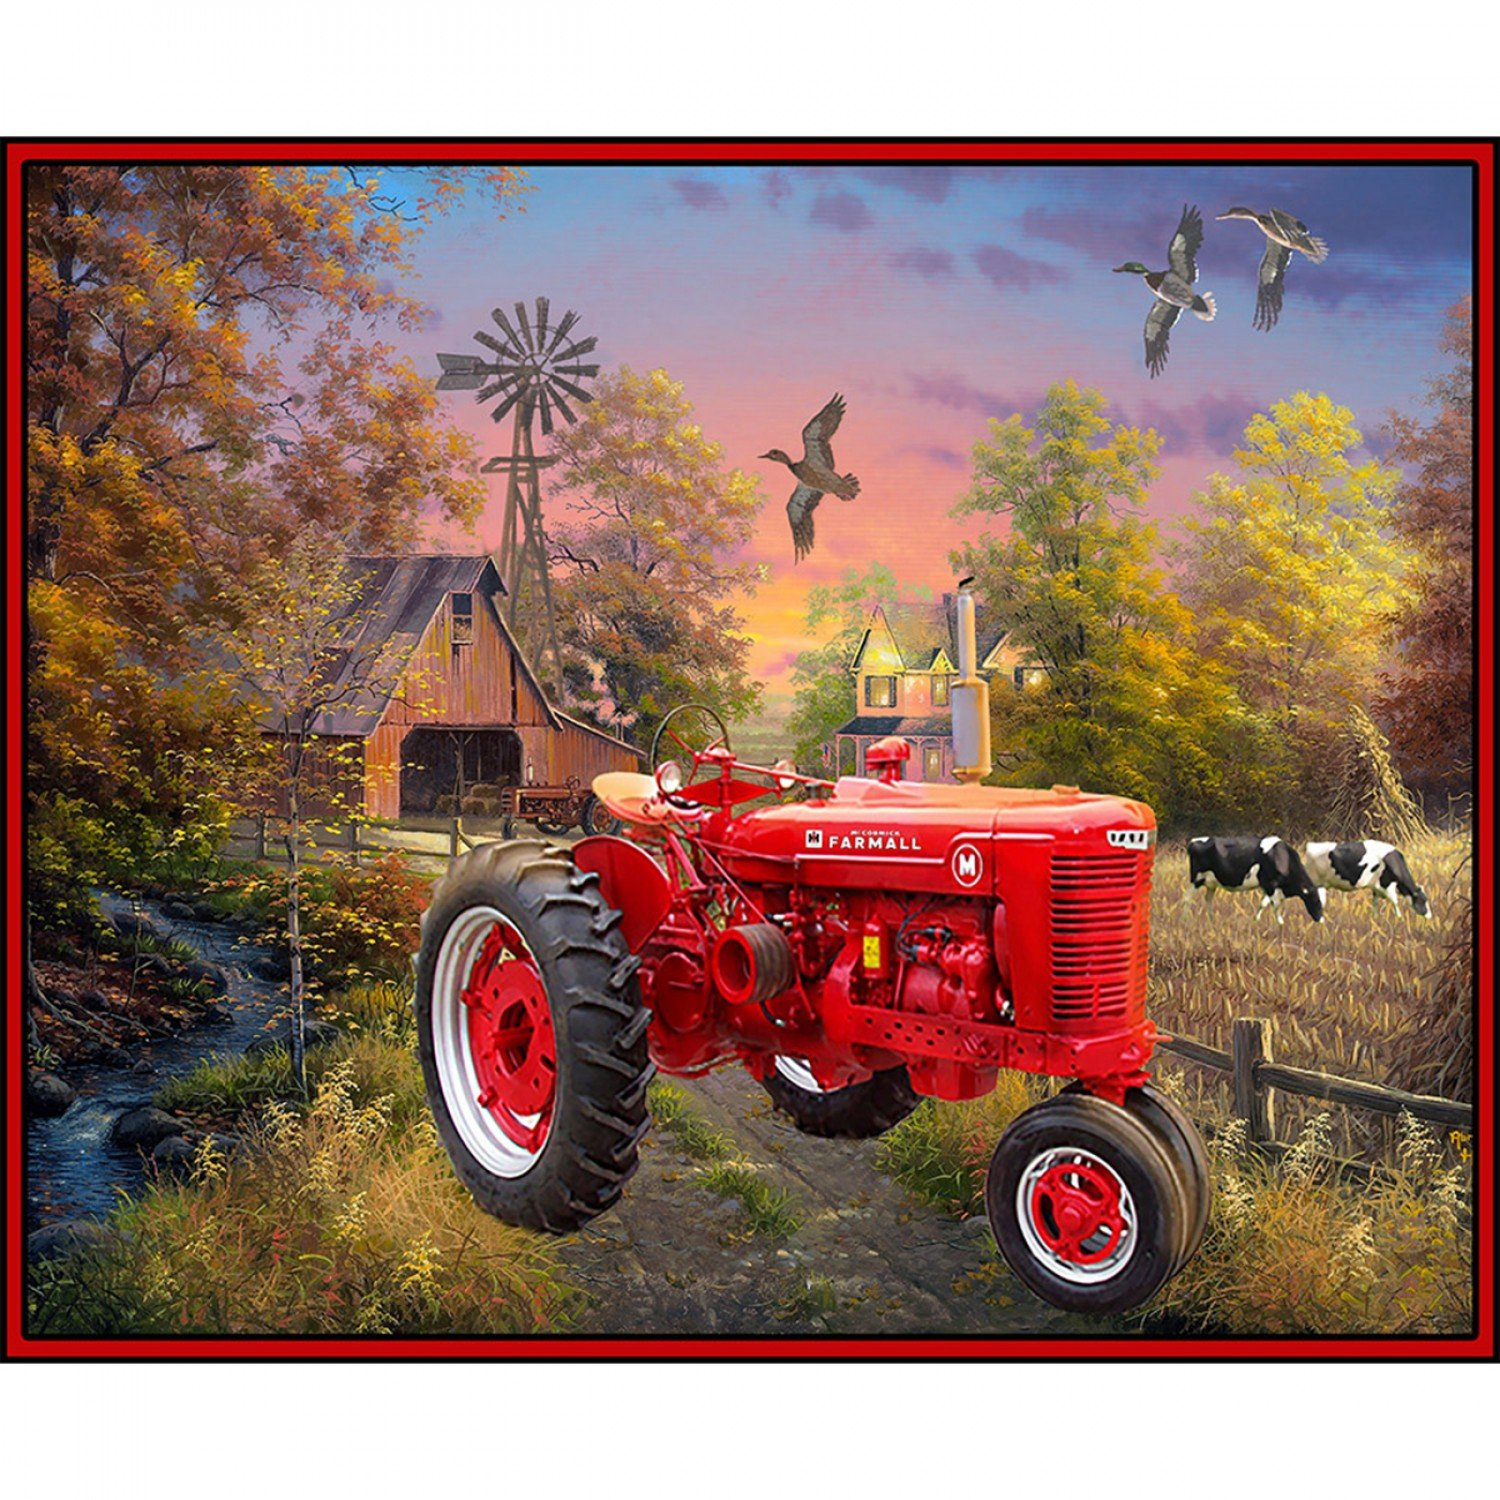 Farmall Country Living Tractor panel by Print Concepts, Inc. 10293-X